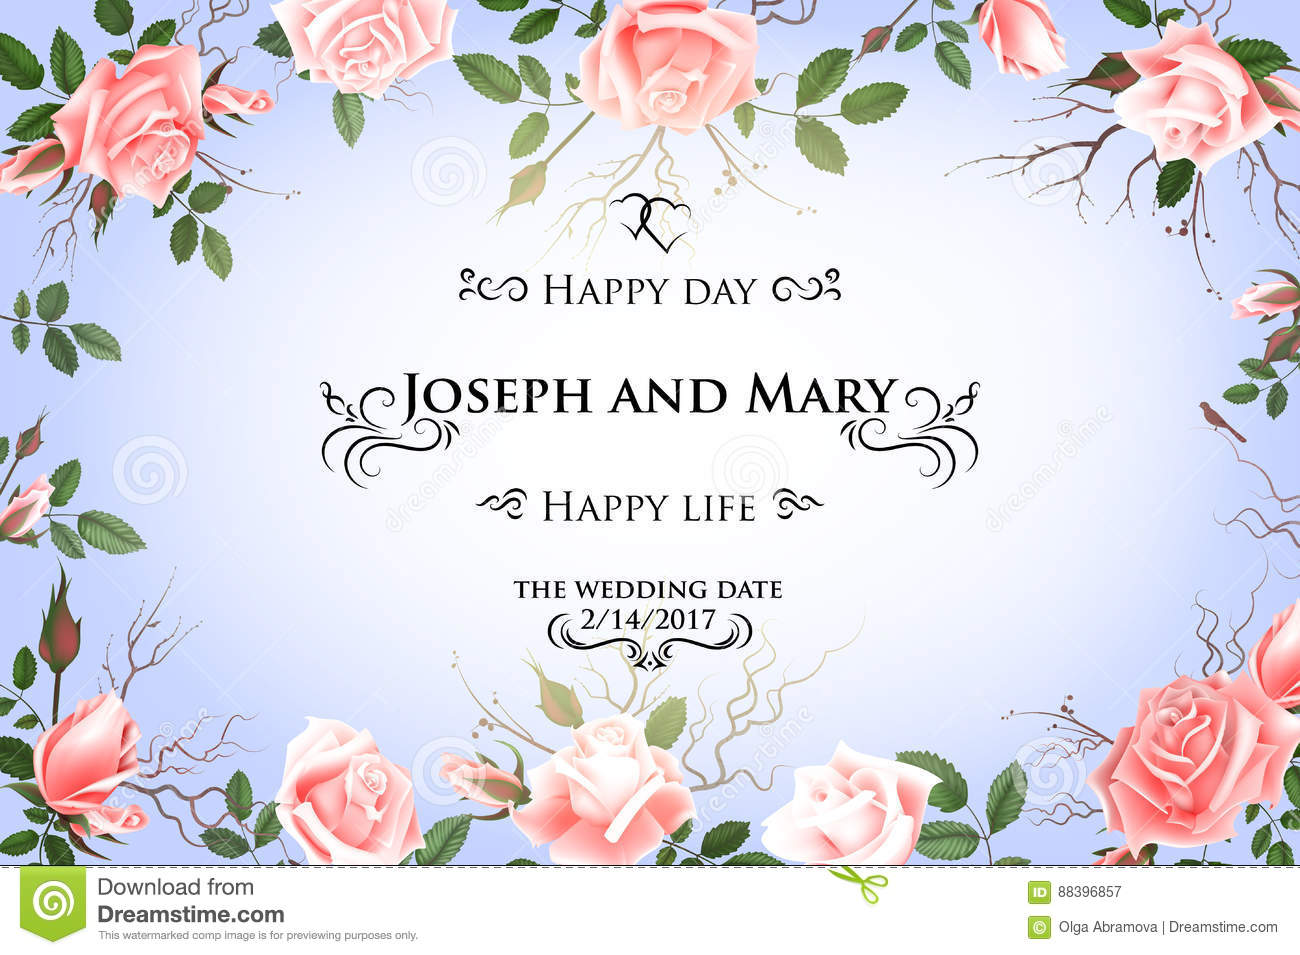 Postcard with delicate flowers roses wedding invitation thank you download postcard with delicate flowers roses wedding invitation thank you save the date maxwellsz